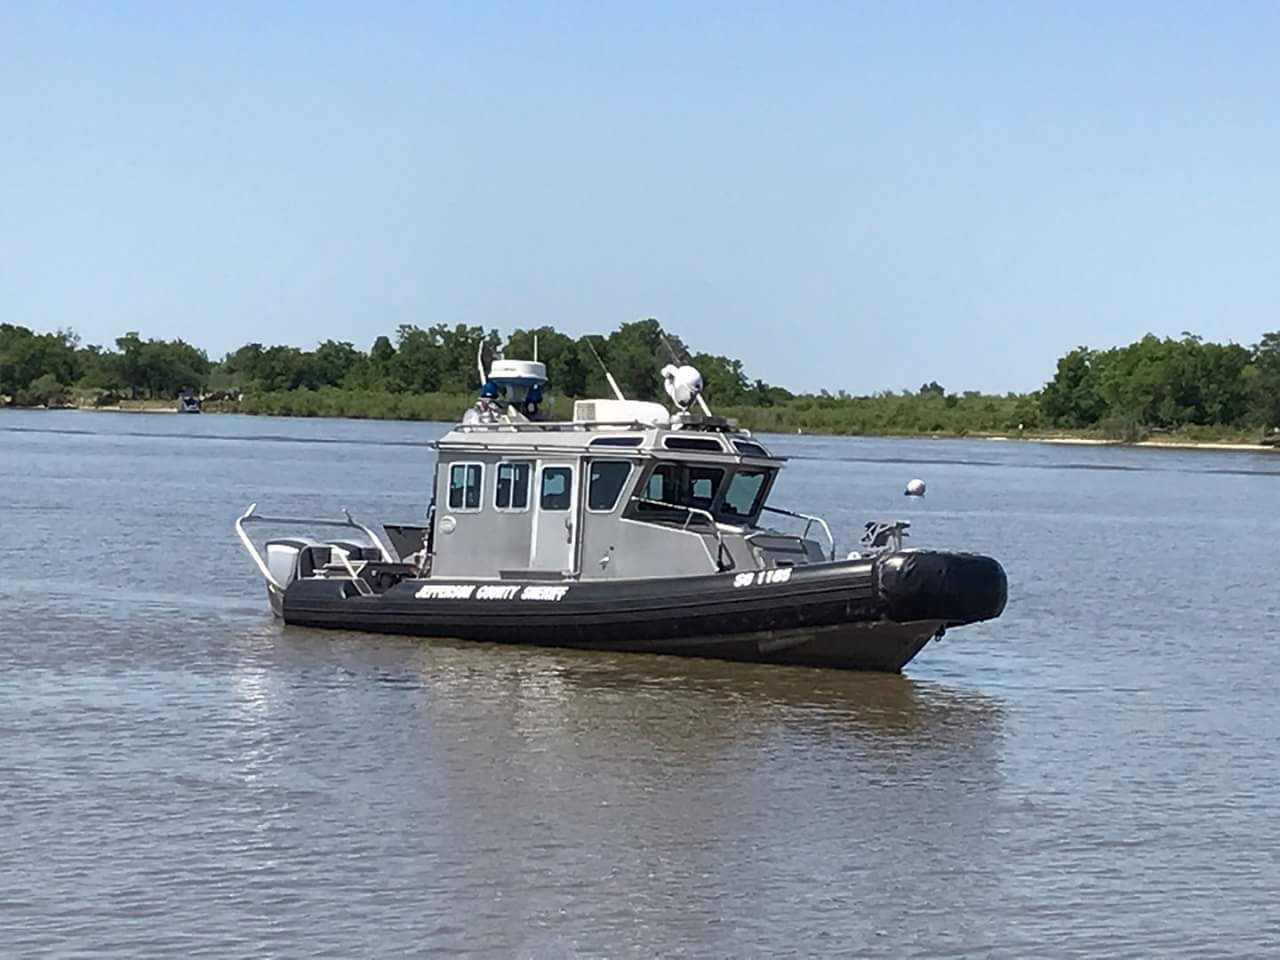 Jefferson County Sheriff's Patrol Boat going down a river.